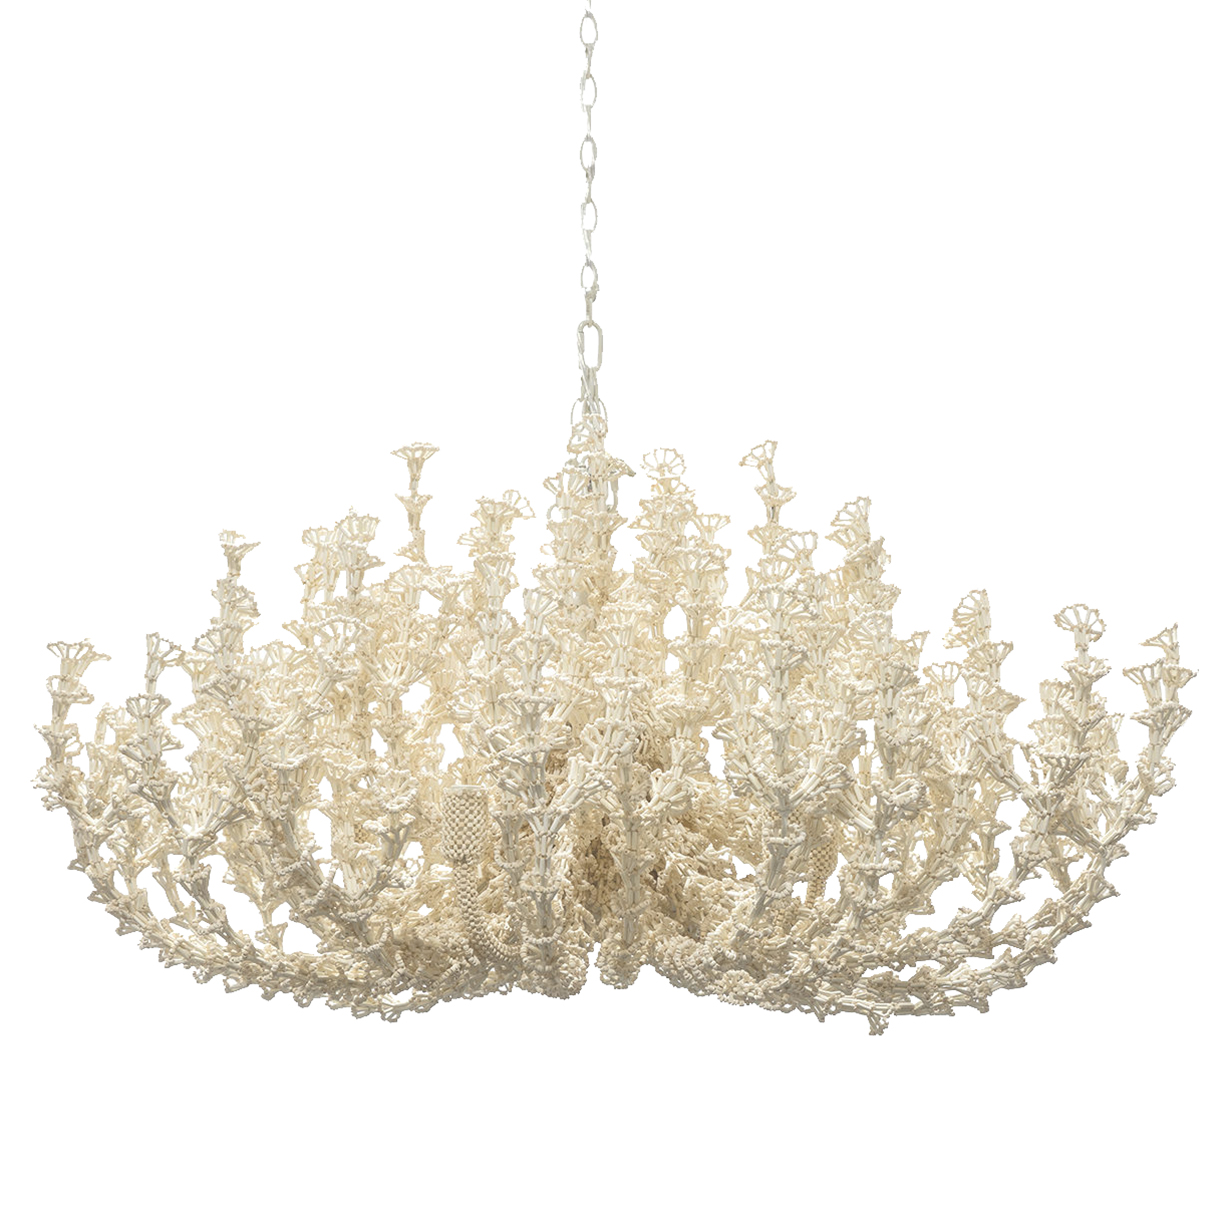 Designer chandeliers eclectic chandeliers kathy kuo home palecek seychelles coastal beach white coco beaded chandelier arubaitofo Image collections